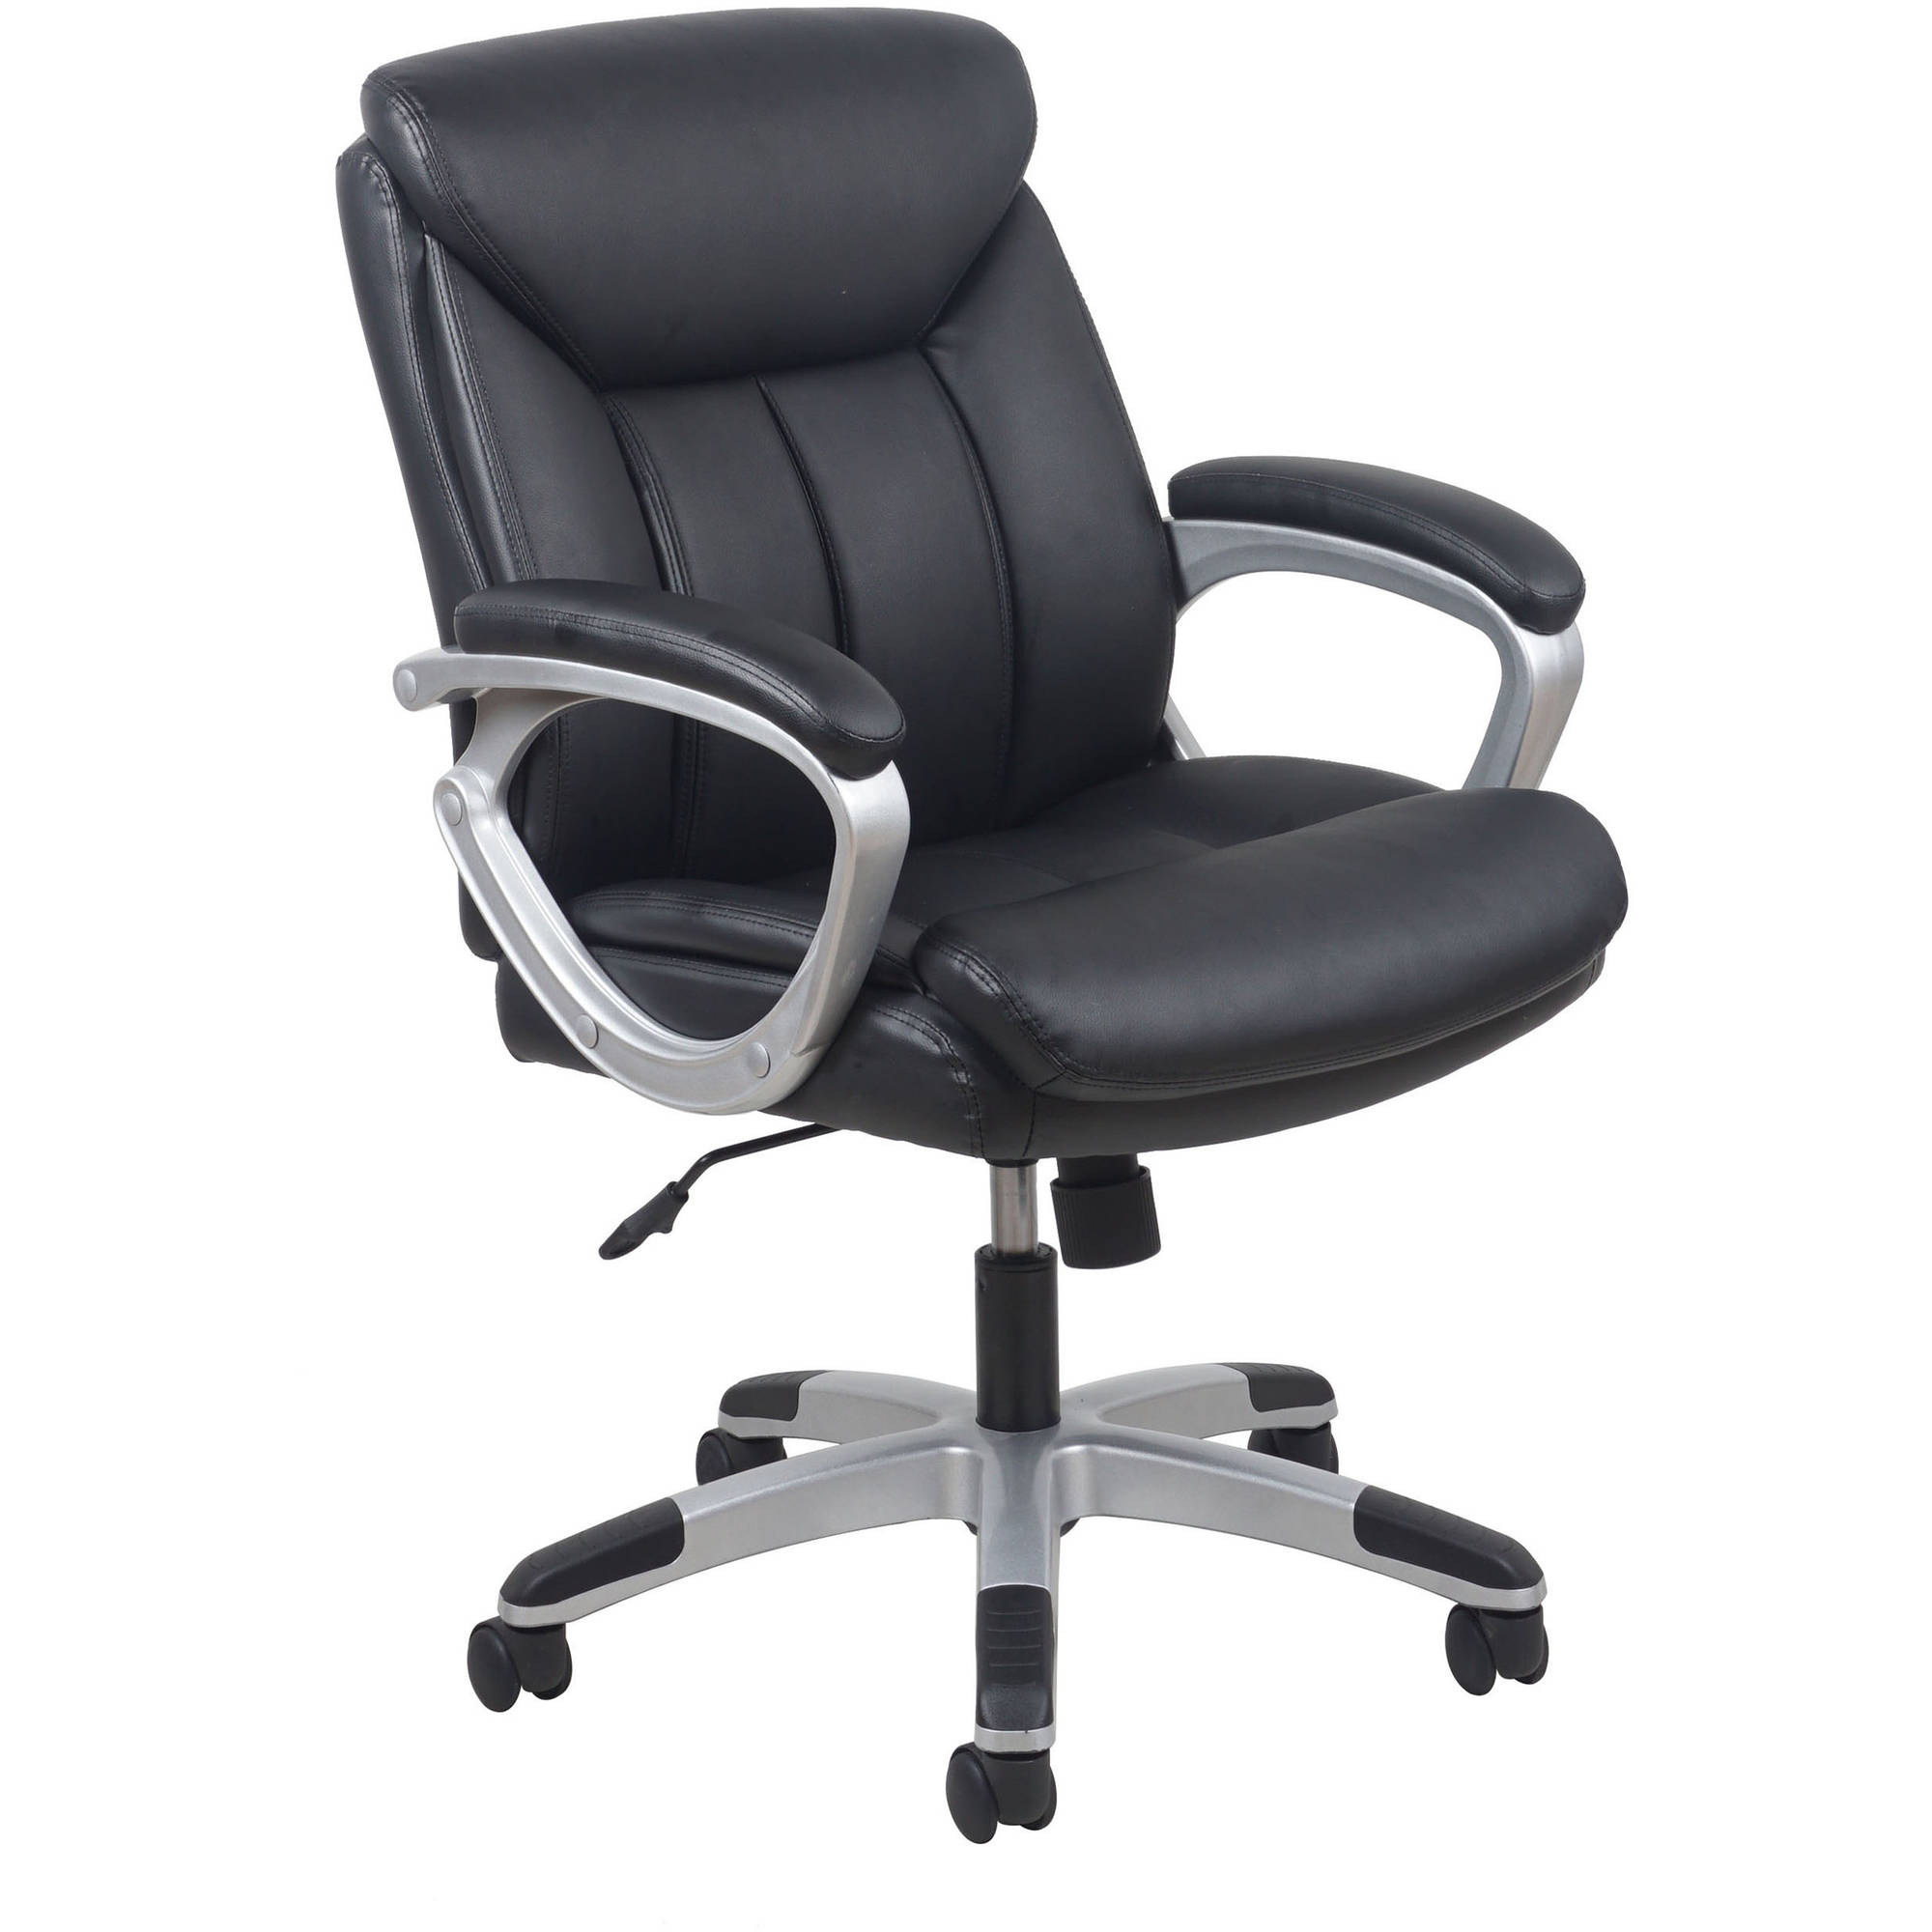 essentialsofm leather executive office chair with arms, black